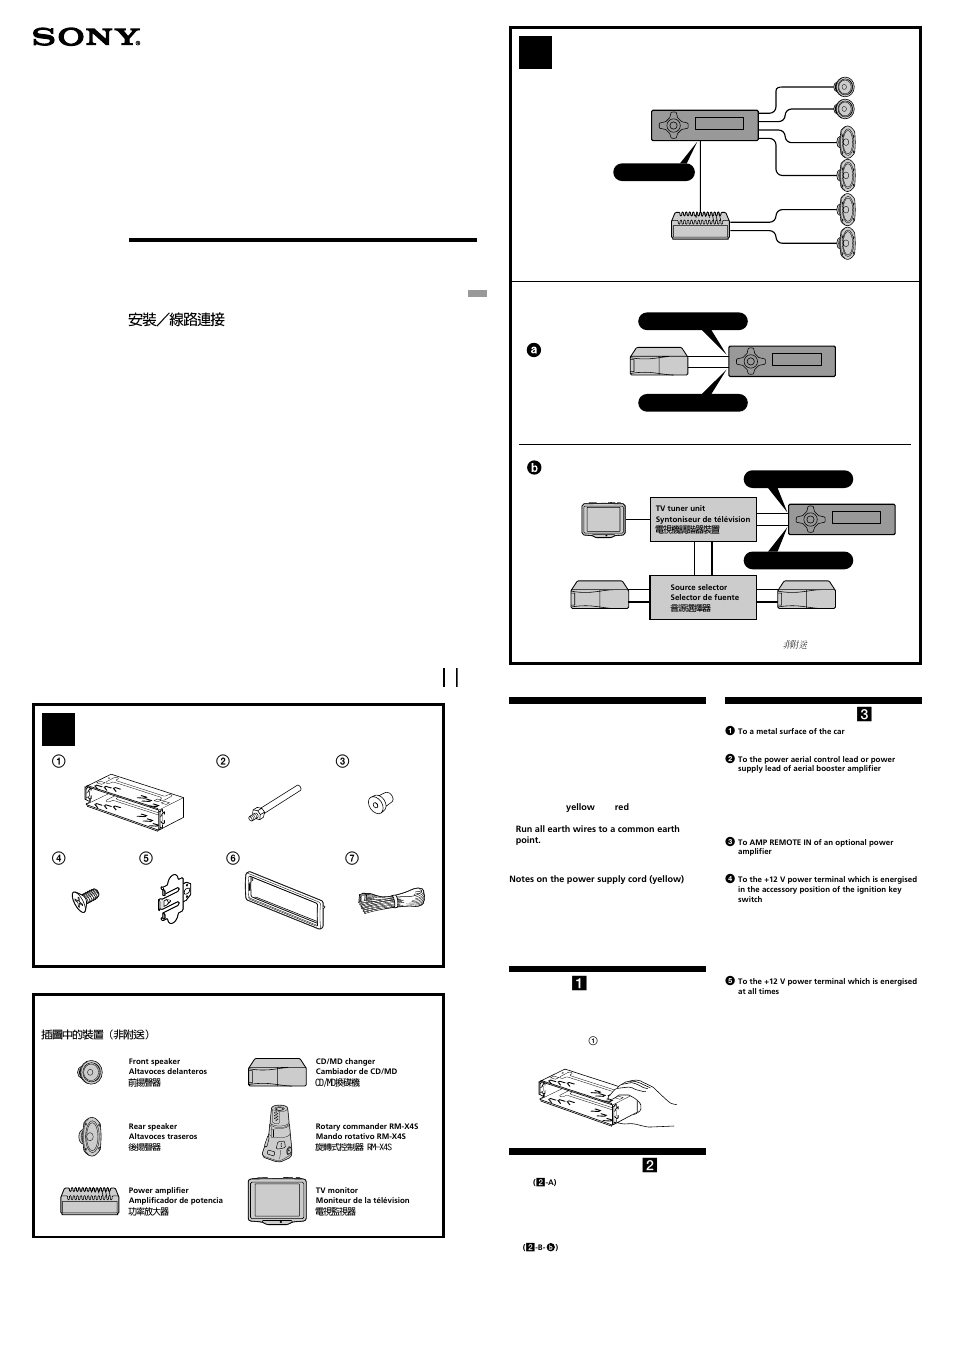 sony xr ca620x page1?resize\=665%2C945 alpine stereo wiring diagram alpine wiring diagrams sony stereo wire harness diagram at gsmx.co